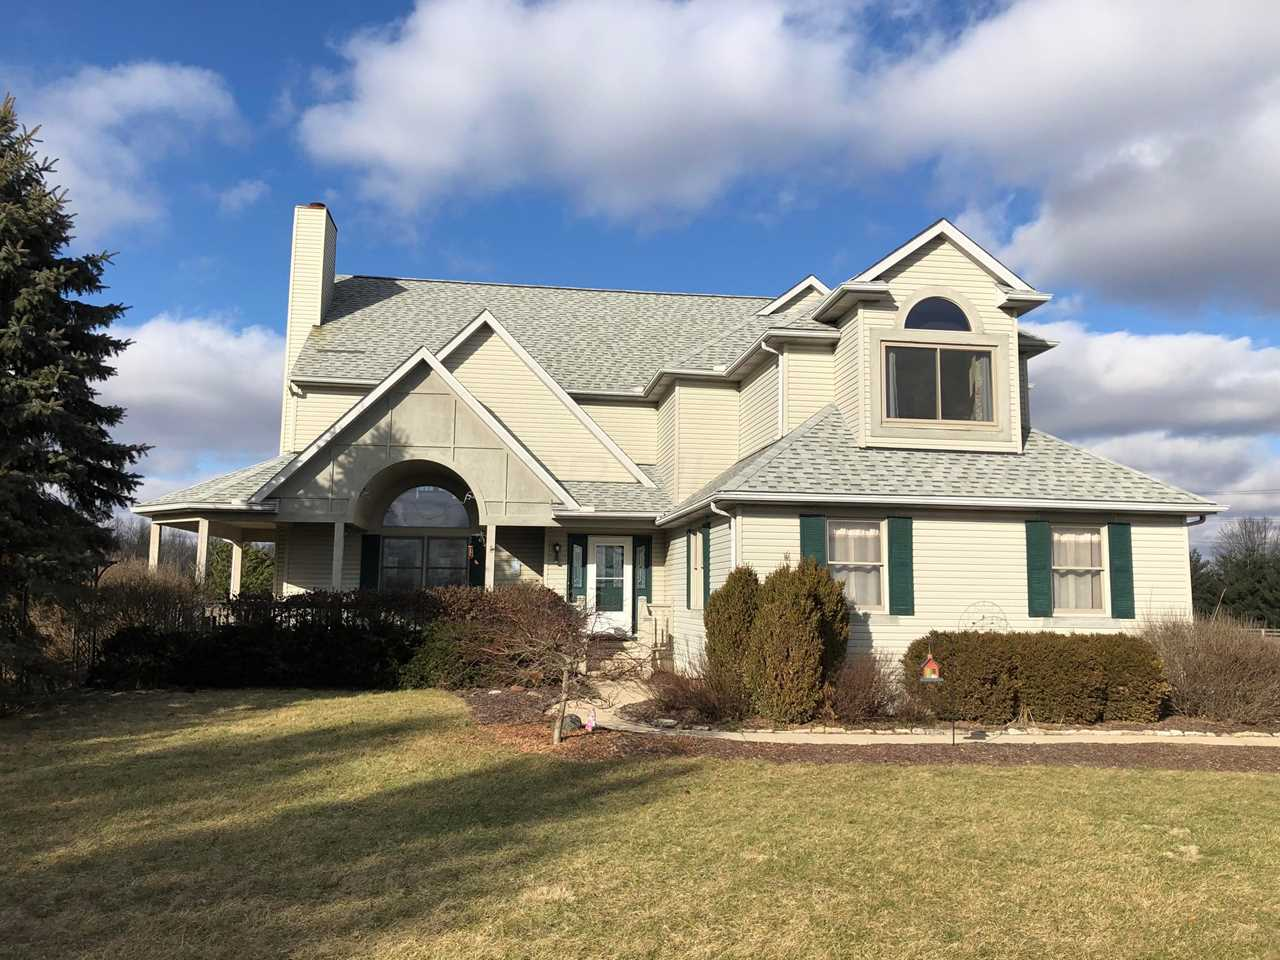 1762 Ford Road Delaware, OH 43015 | MLS 219003383 Photo 1